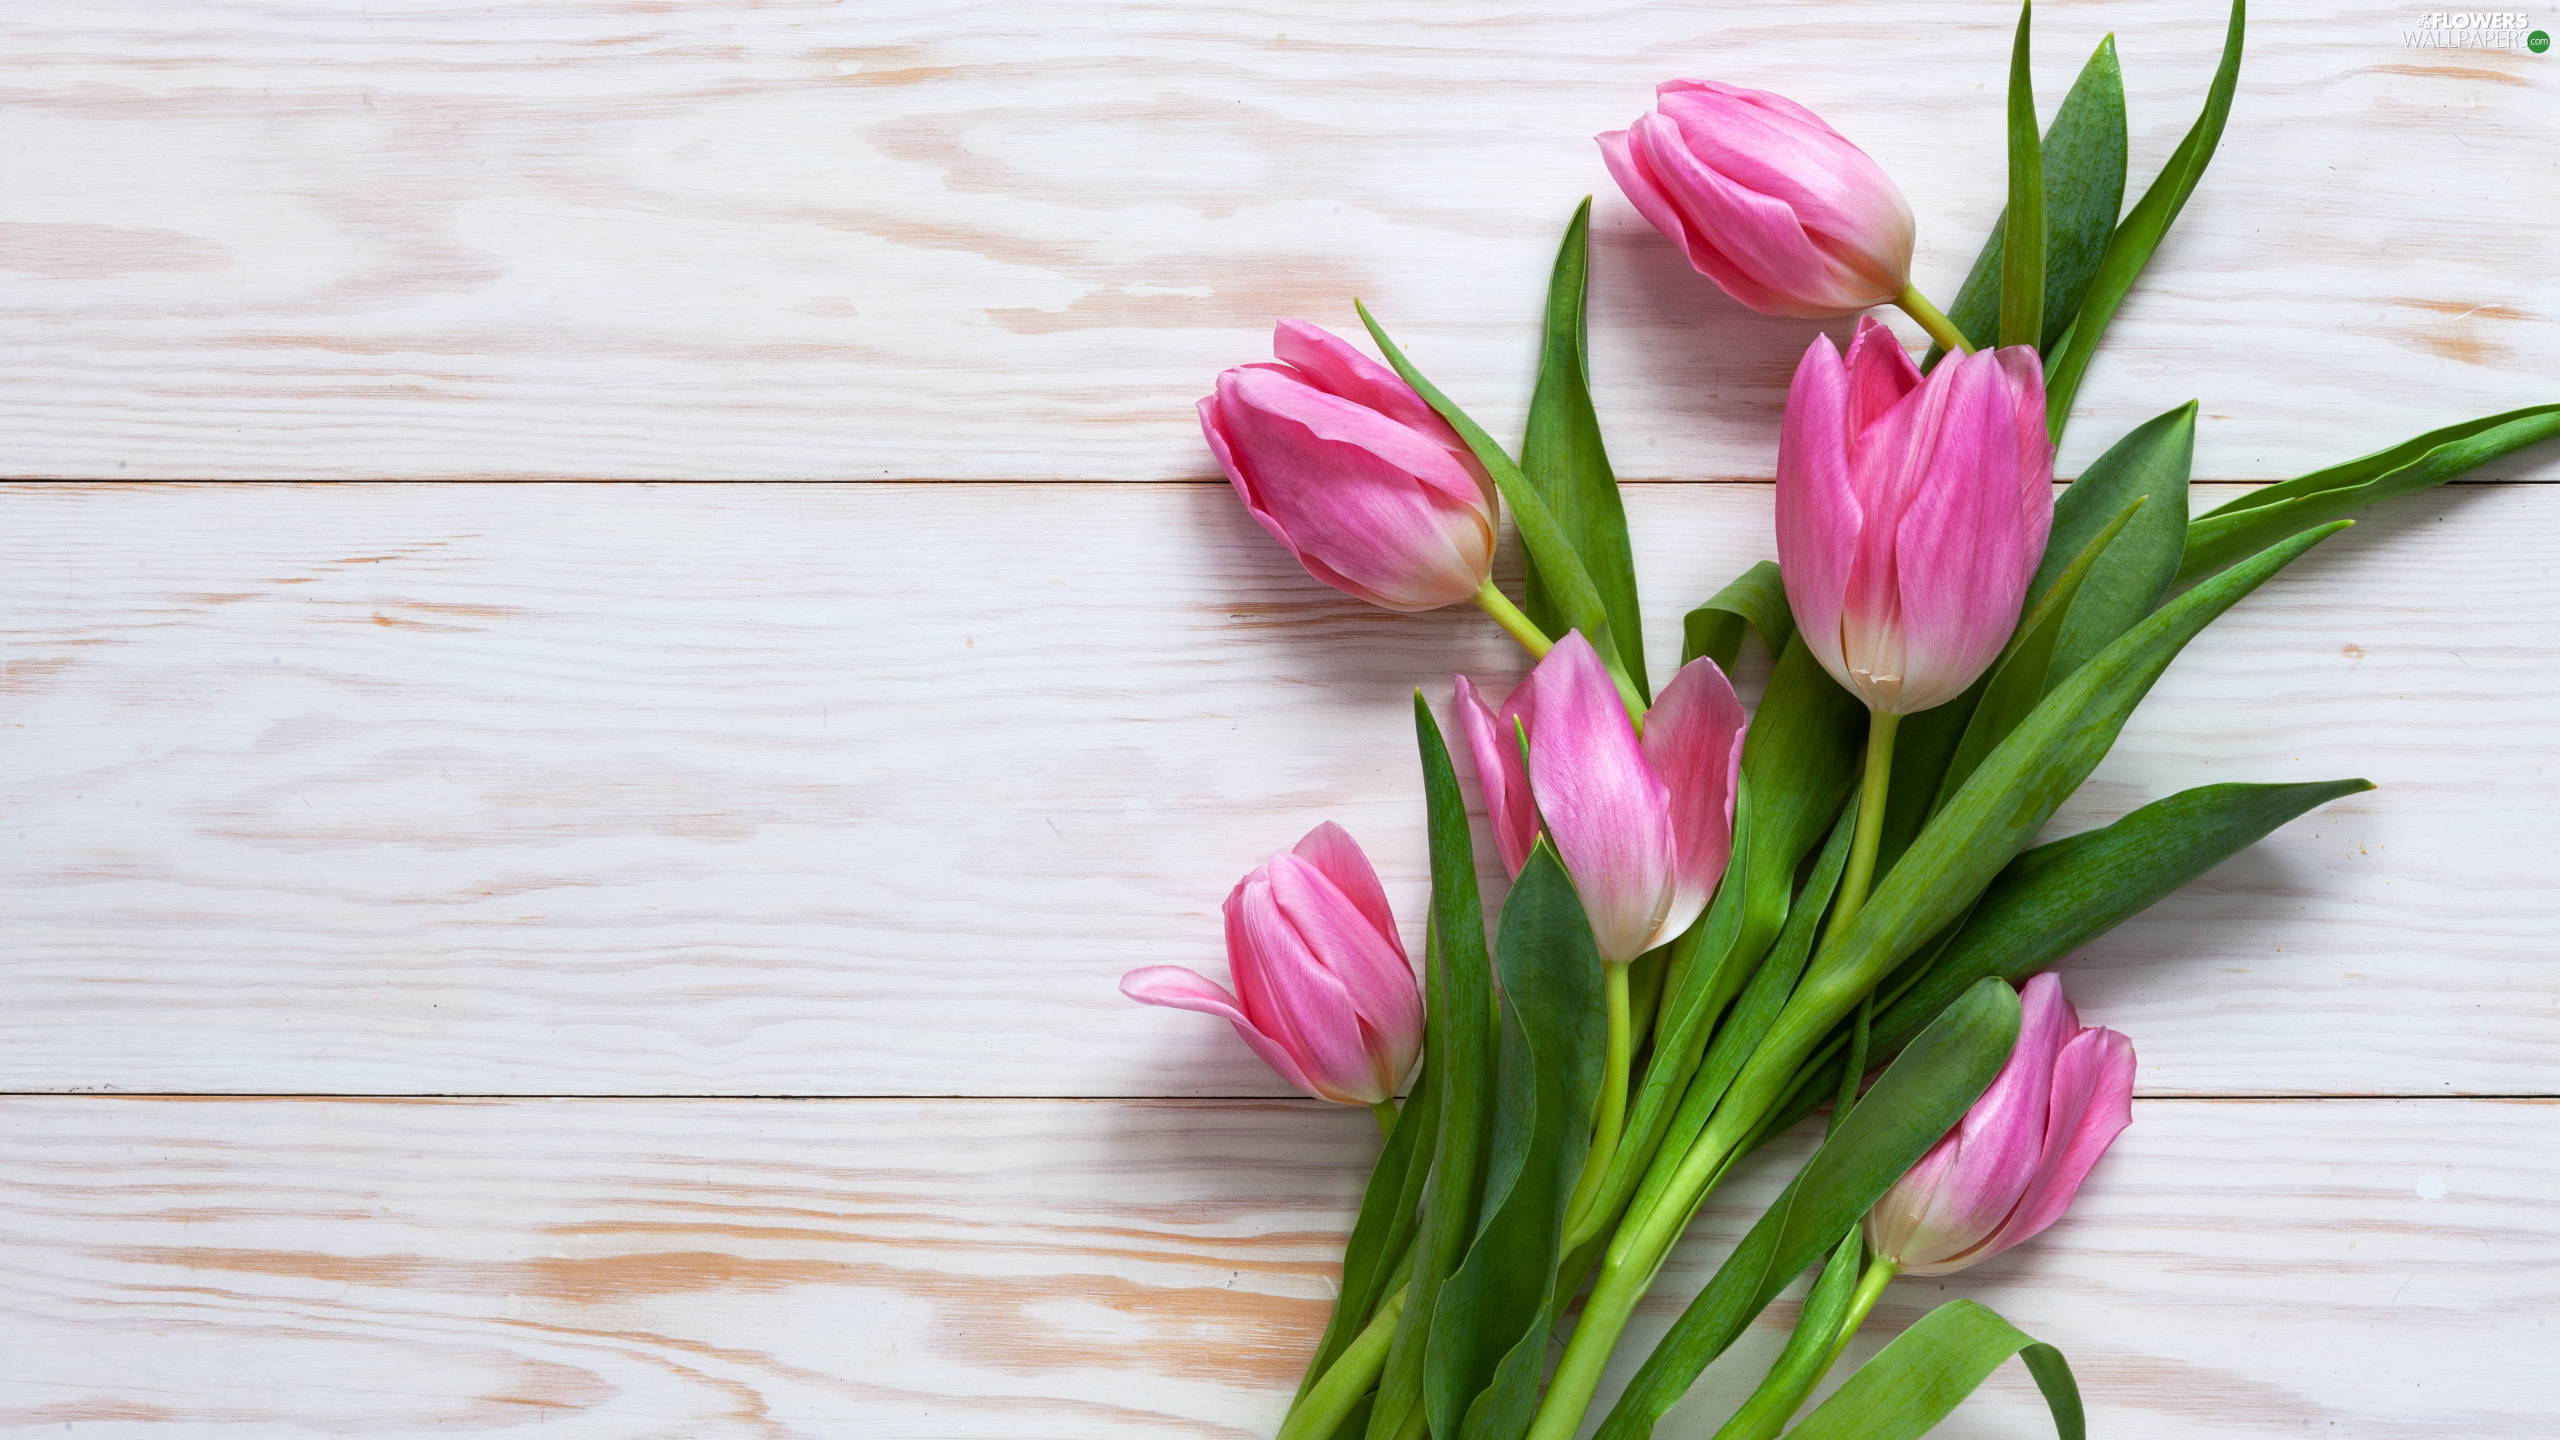 Pink, boarding, White, Tulips